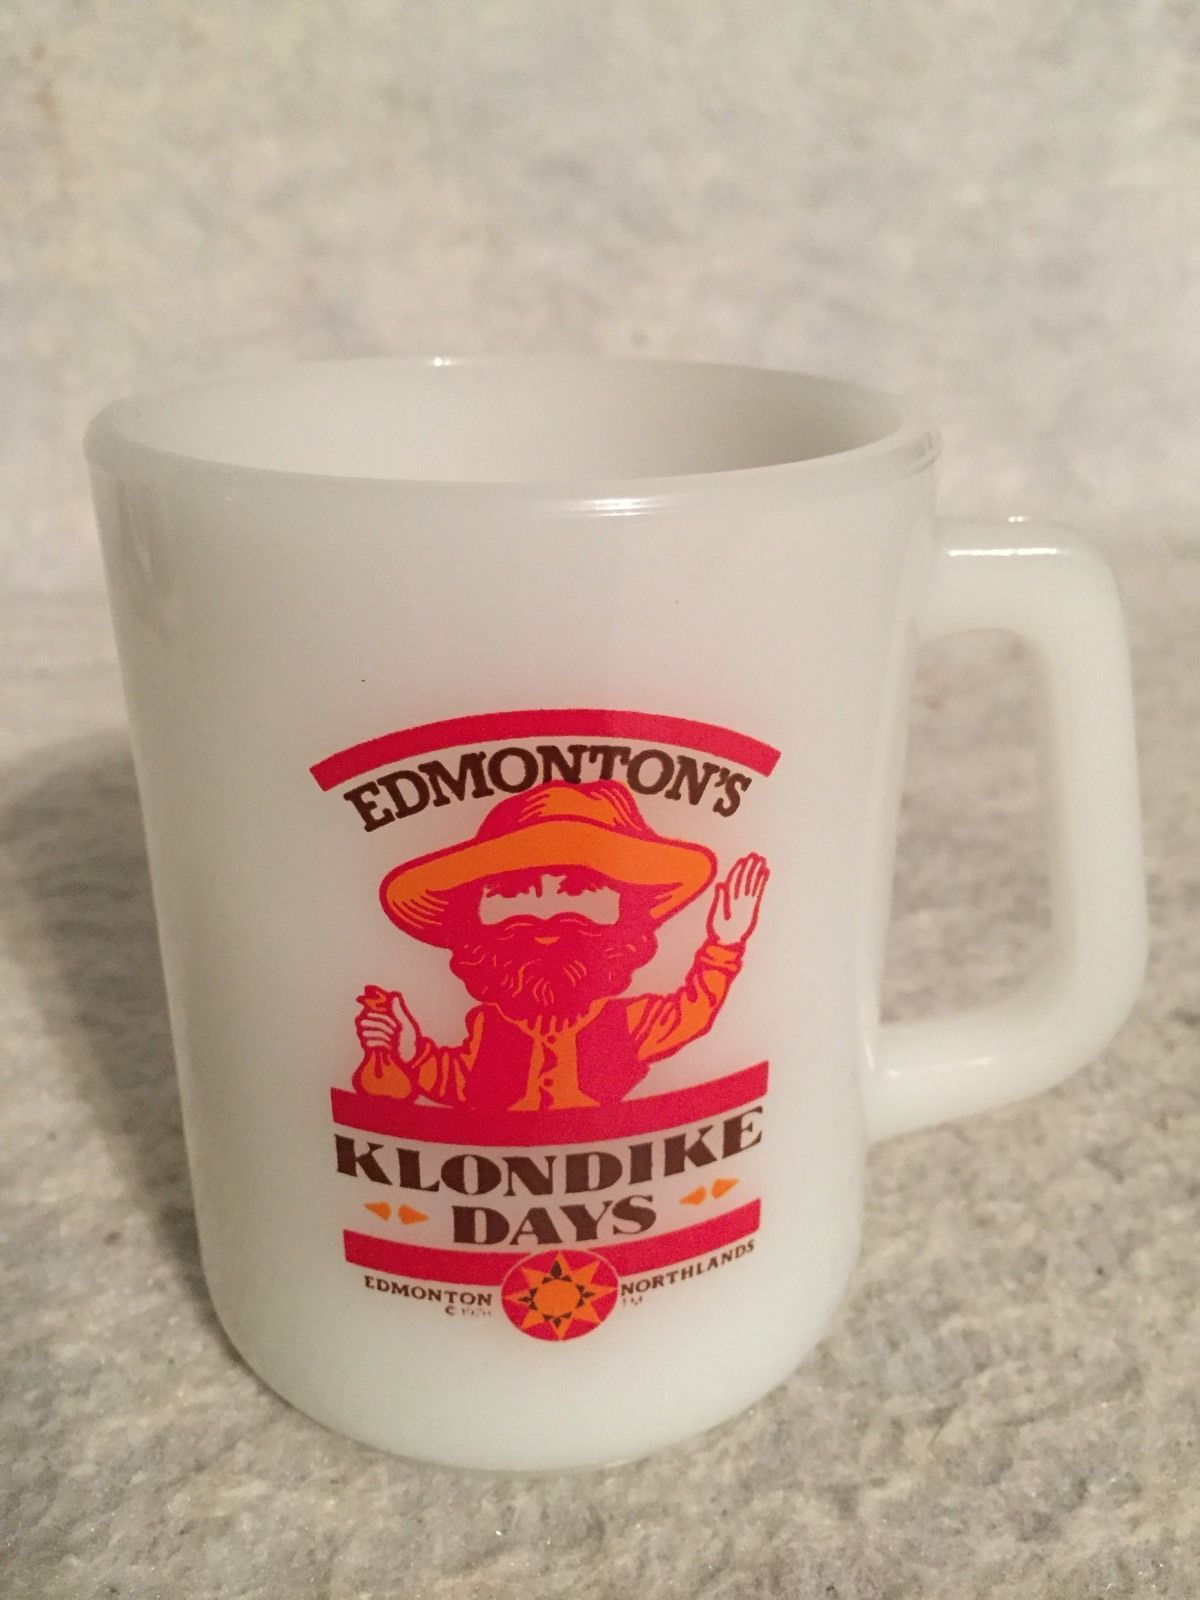 Primary image for 1978 Glass bake Mug. Edmonton's Klondike Days. Northlands. Orange  Red.